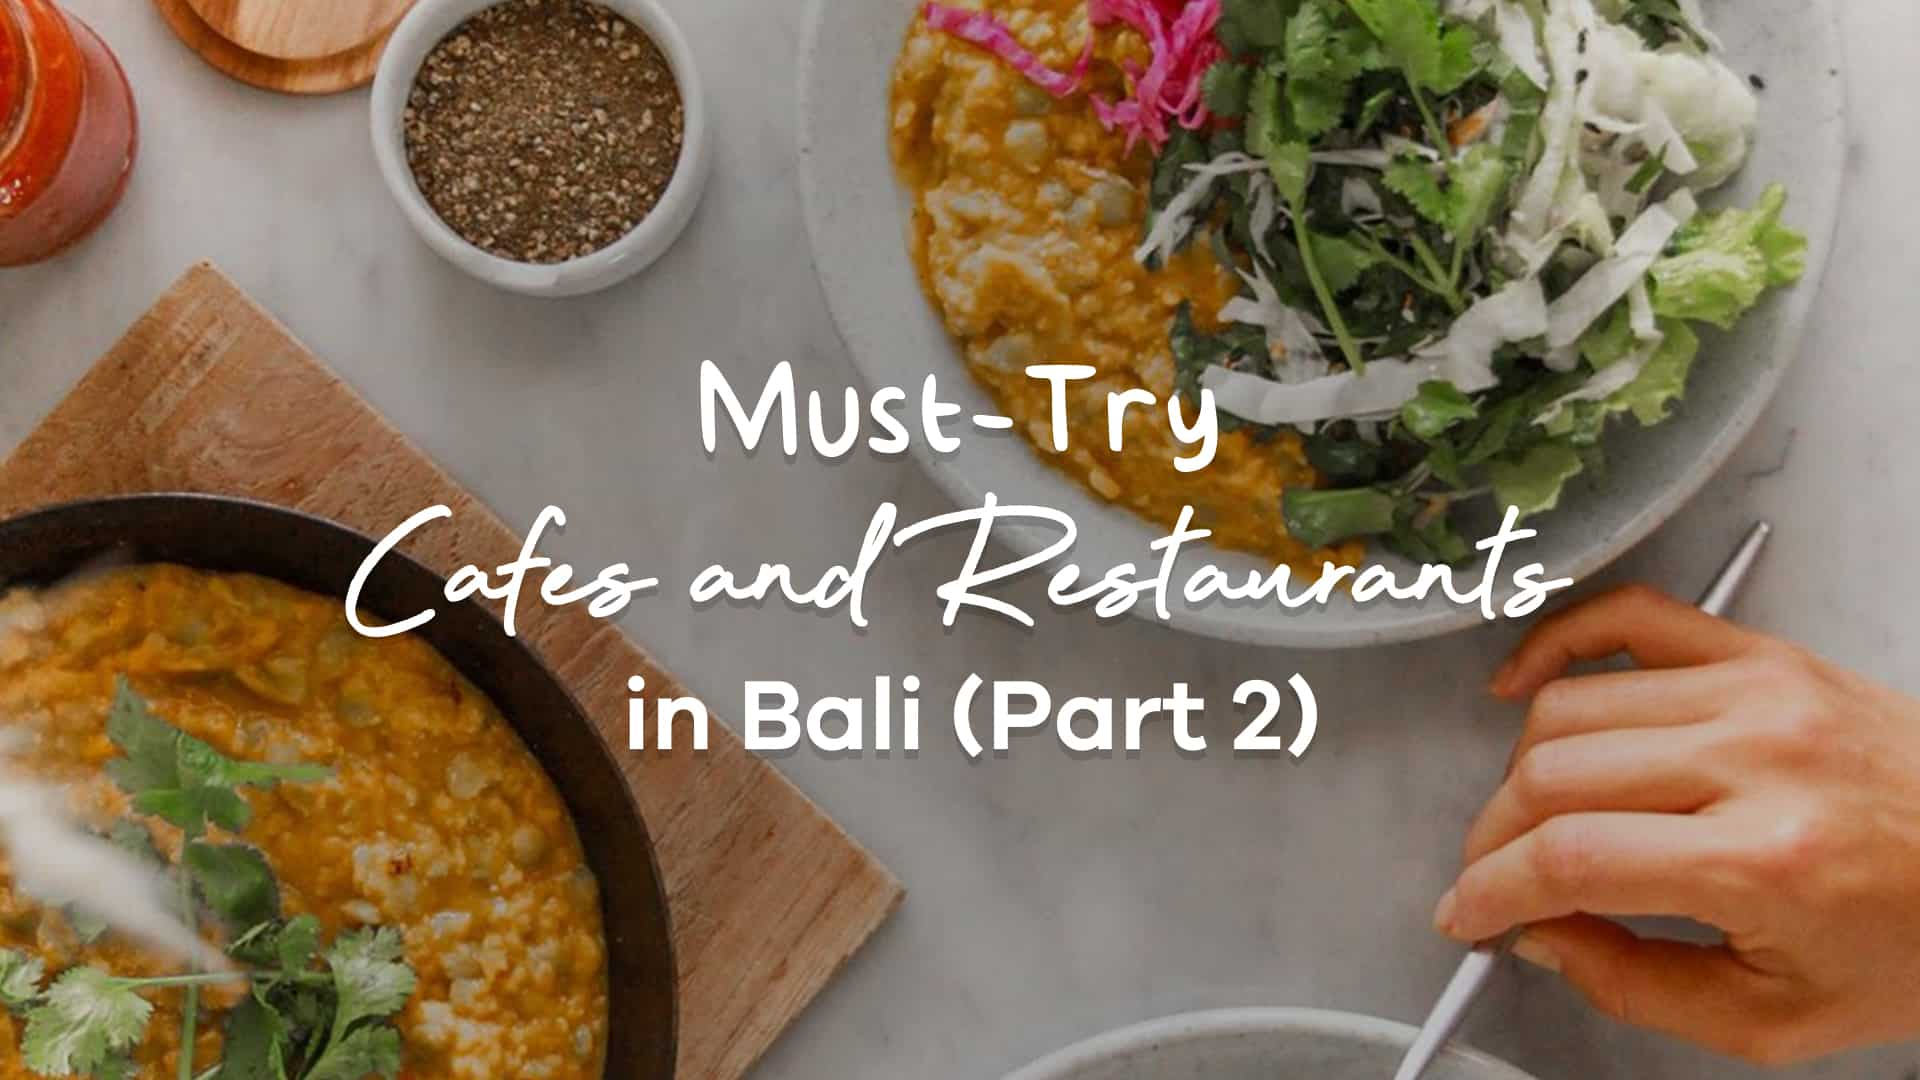 Cafes and Restaurants in Bali 2020